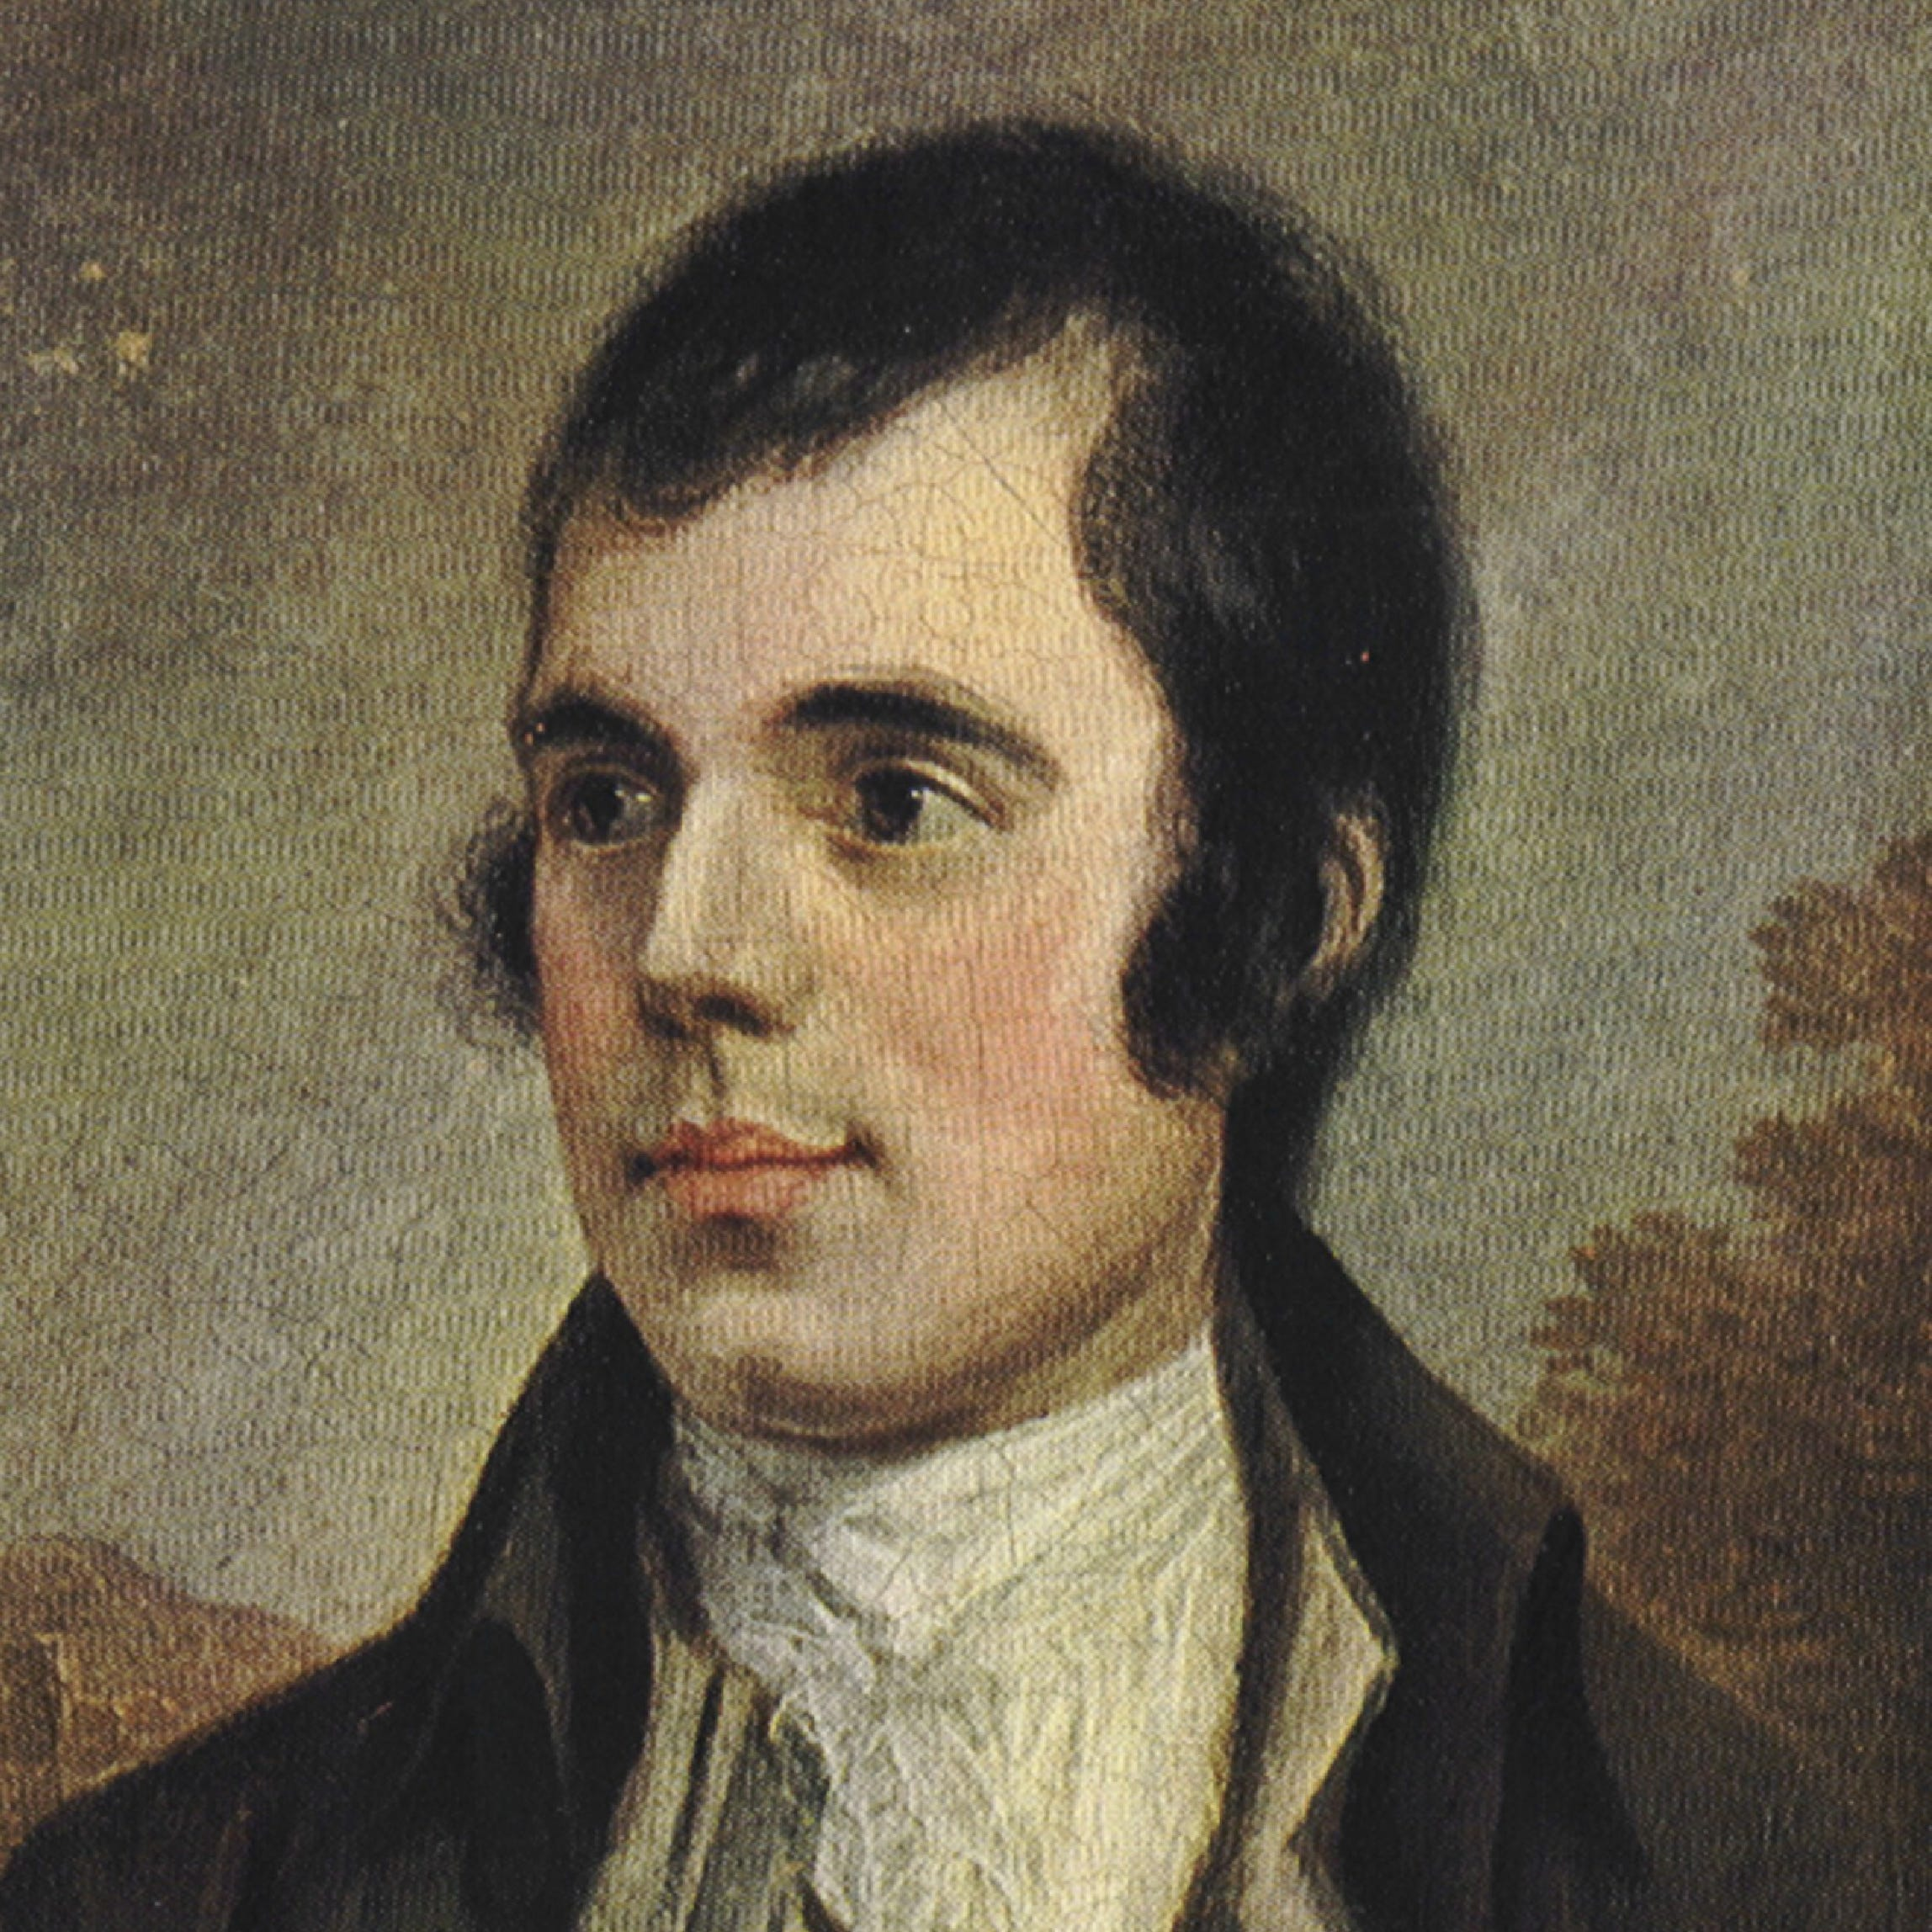 Don a kilt, regale the haggis to celebrate Scottish poet Robert Burns